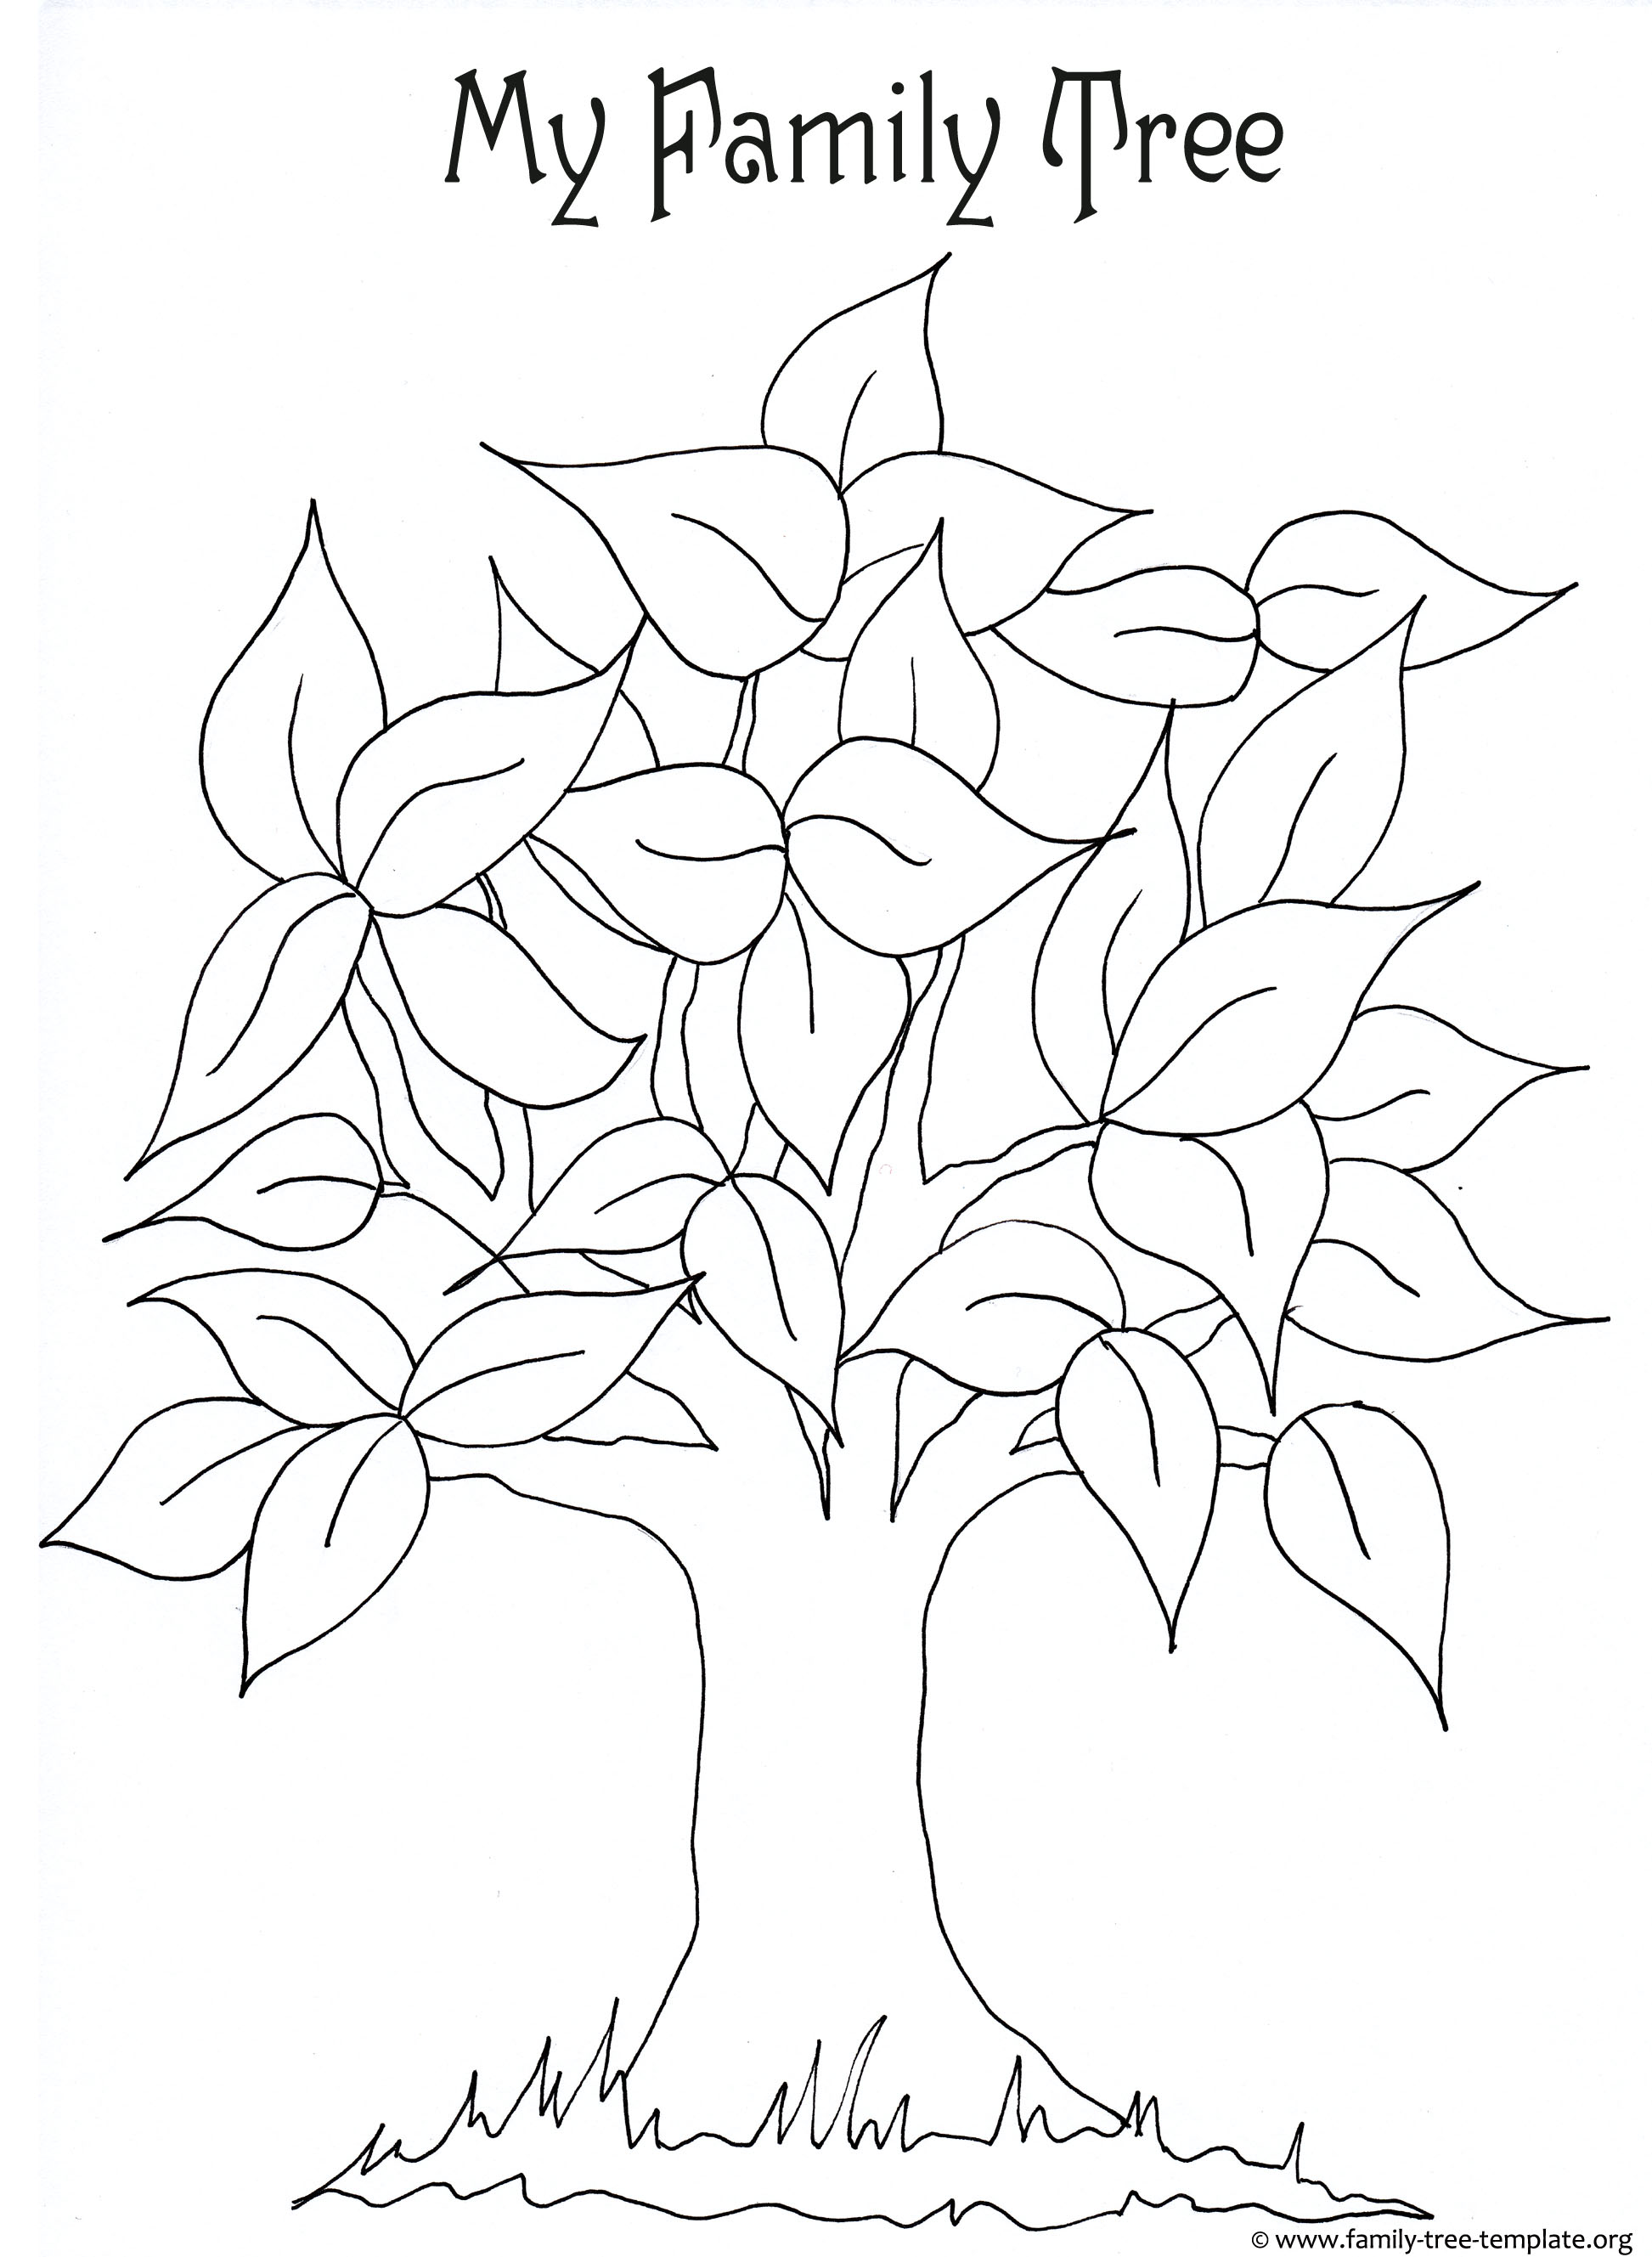 free aunts uncles cousins coloring pages